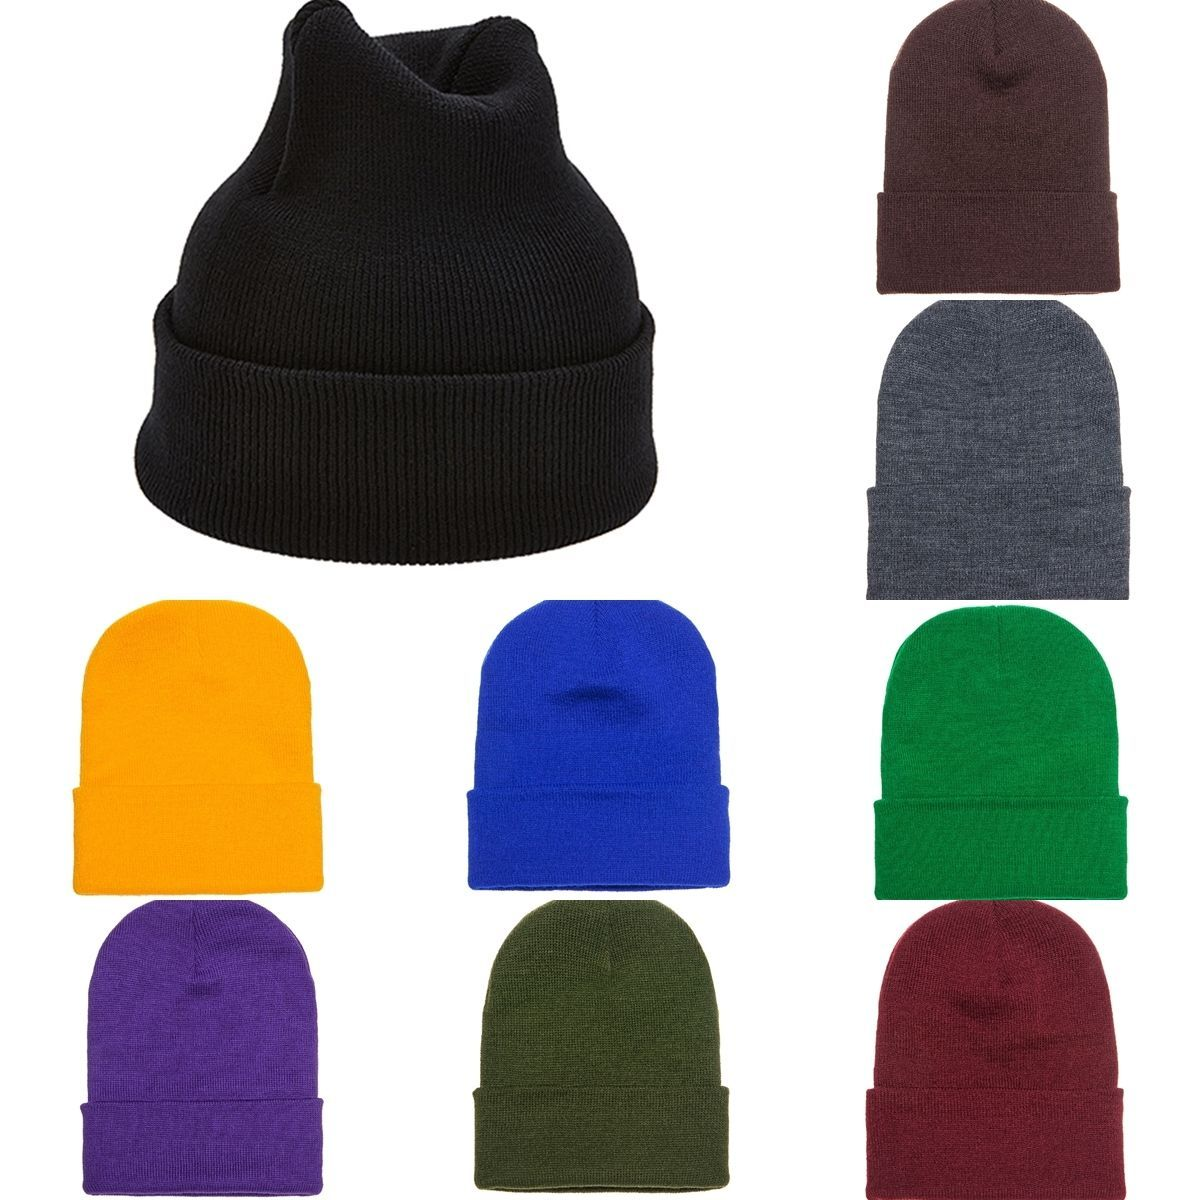 CUSTOM EMBROIDERY Personalized Customized Yupoong Cuffed Beanie Cap Hat 1501KC